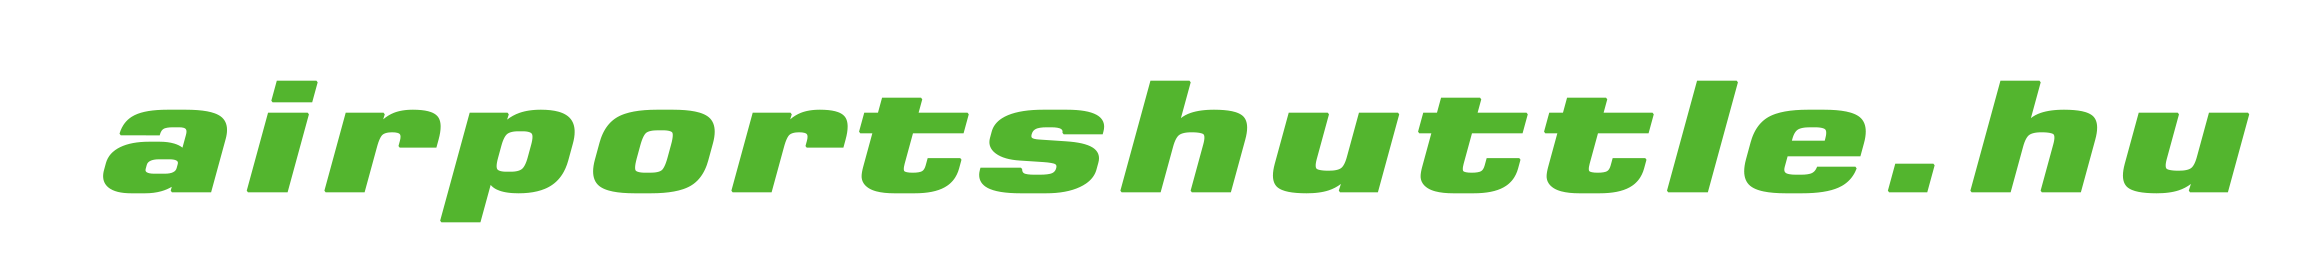 AirportShuttle logo